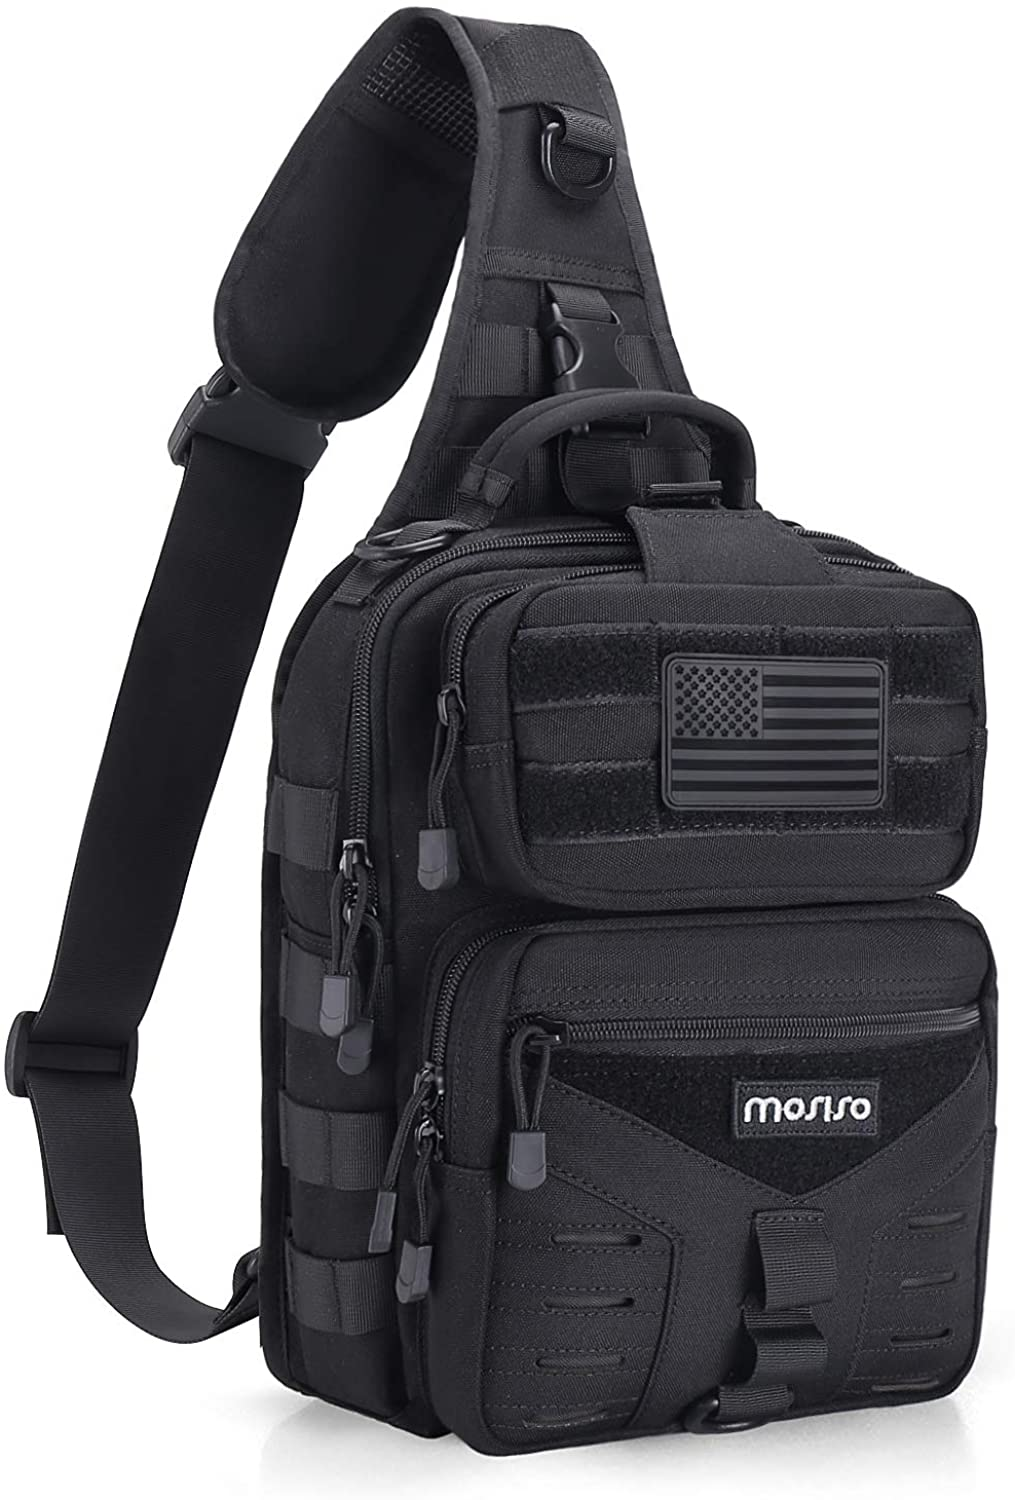 MOSISO Tactical Backpack, One Shoulder Slingbag Military Army Assault Molle Rucksack Everyday Carrying Daypack with USA Flag Patch for Outdoor Sports Hiking Hunting Fishing Camping Training, Black